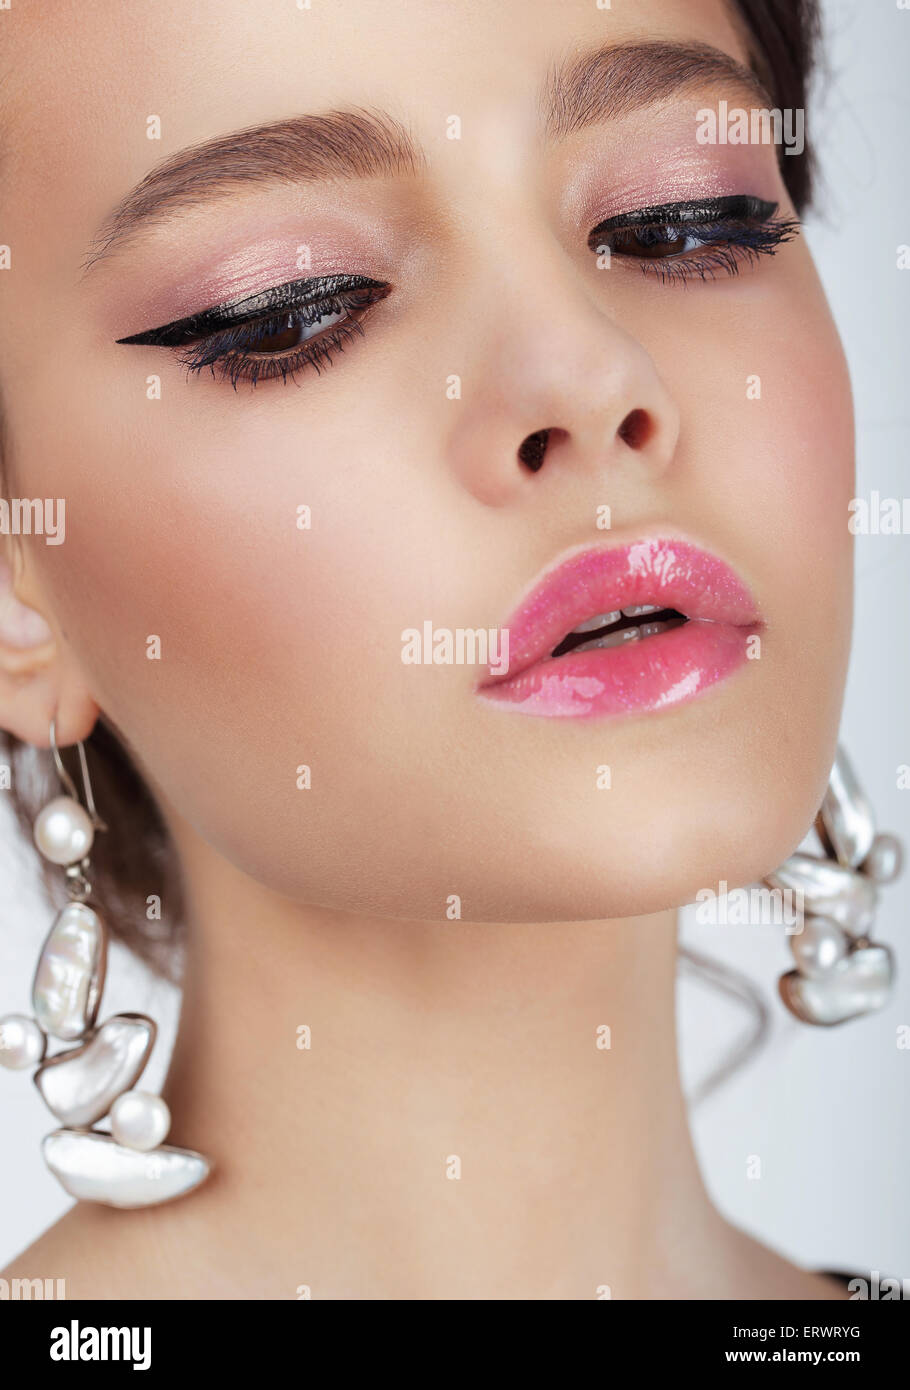 Studio Portrait of Young WOman with Earrings - Stock Image